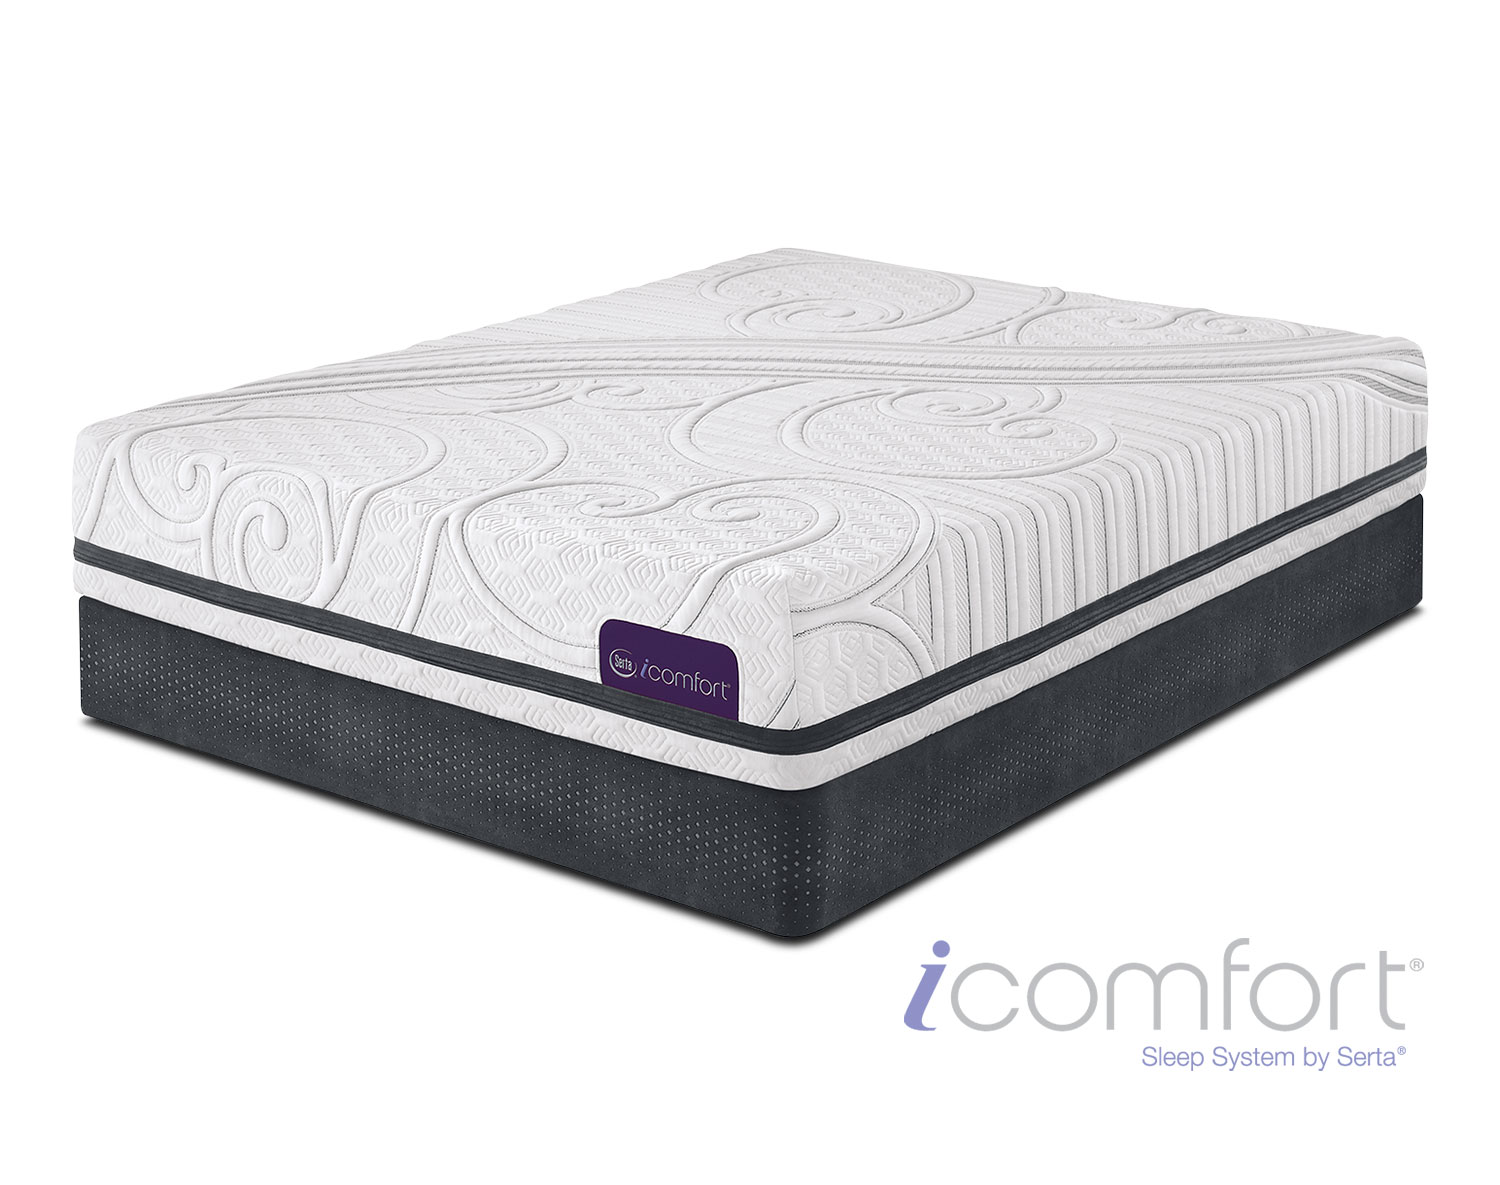 The Savant III Plush Mattress Collection